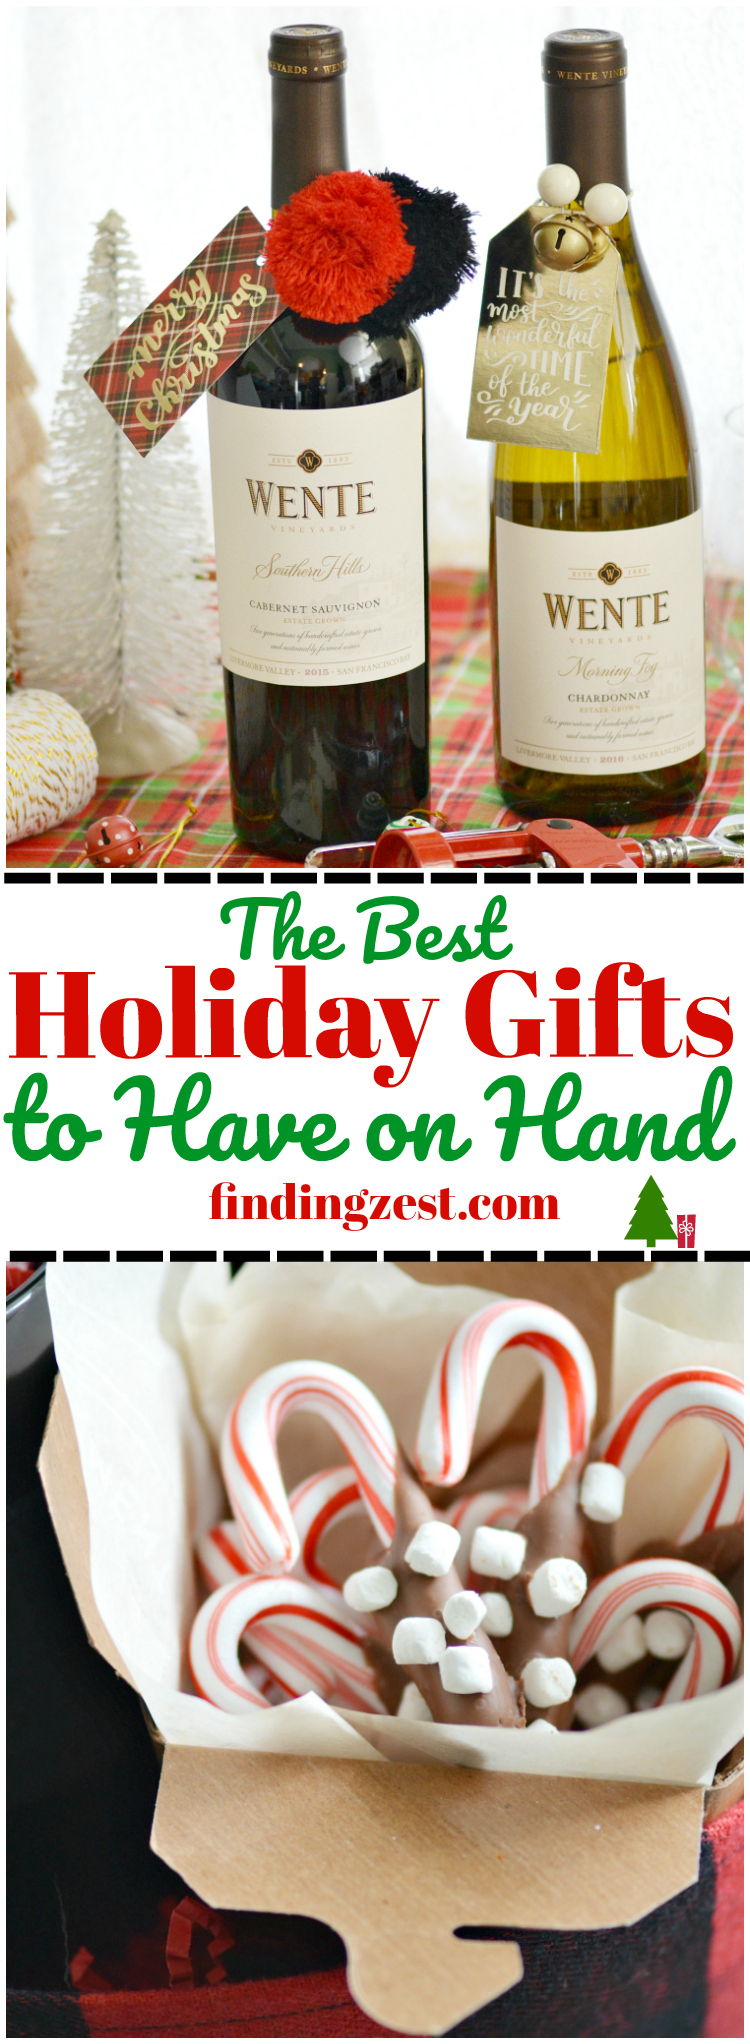 Save yourself the stress and plan ahead for unexpected gift giving. Here are the best holiday gifts to have on hand so you are ready with a thoughtful gift! You'll love these ideas which work for virtually everyone!